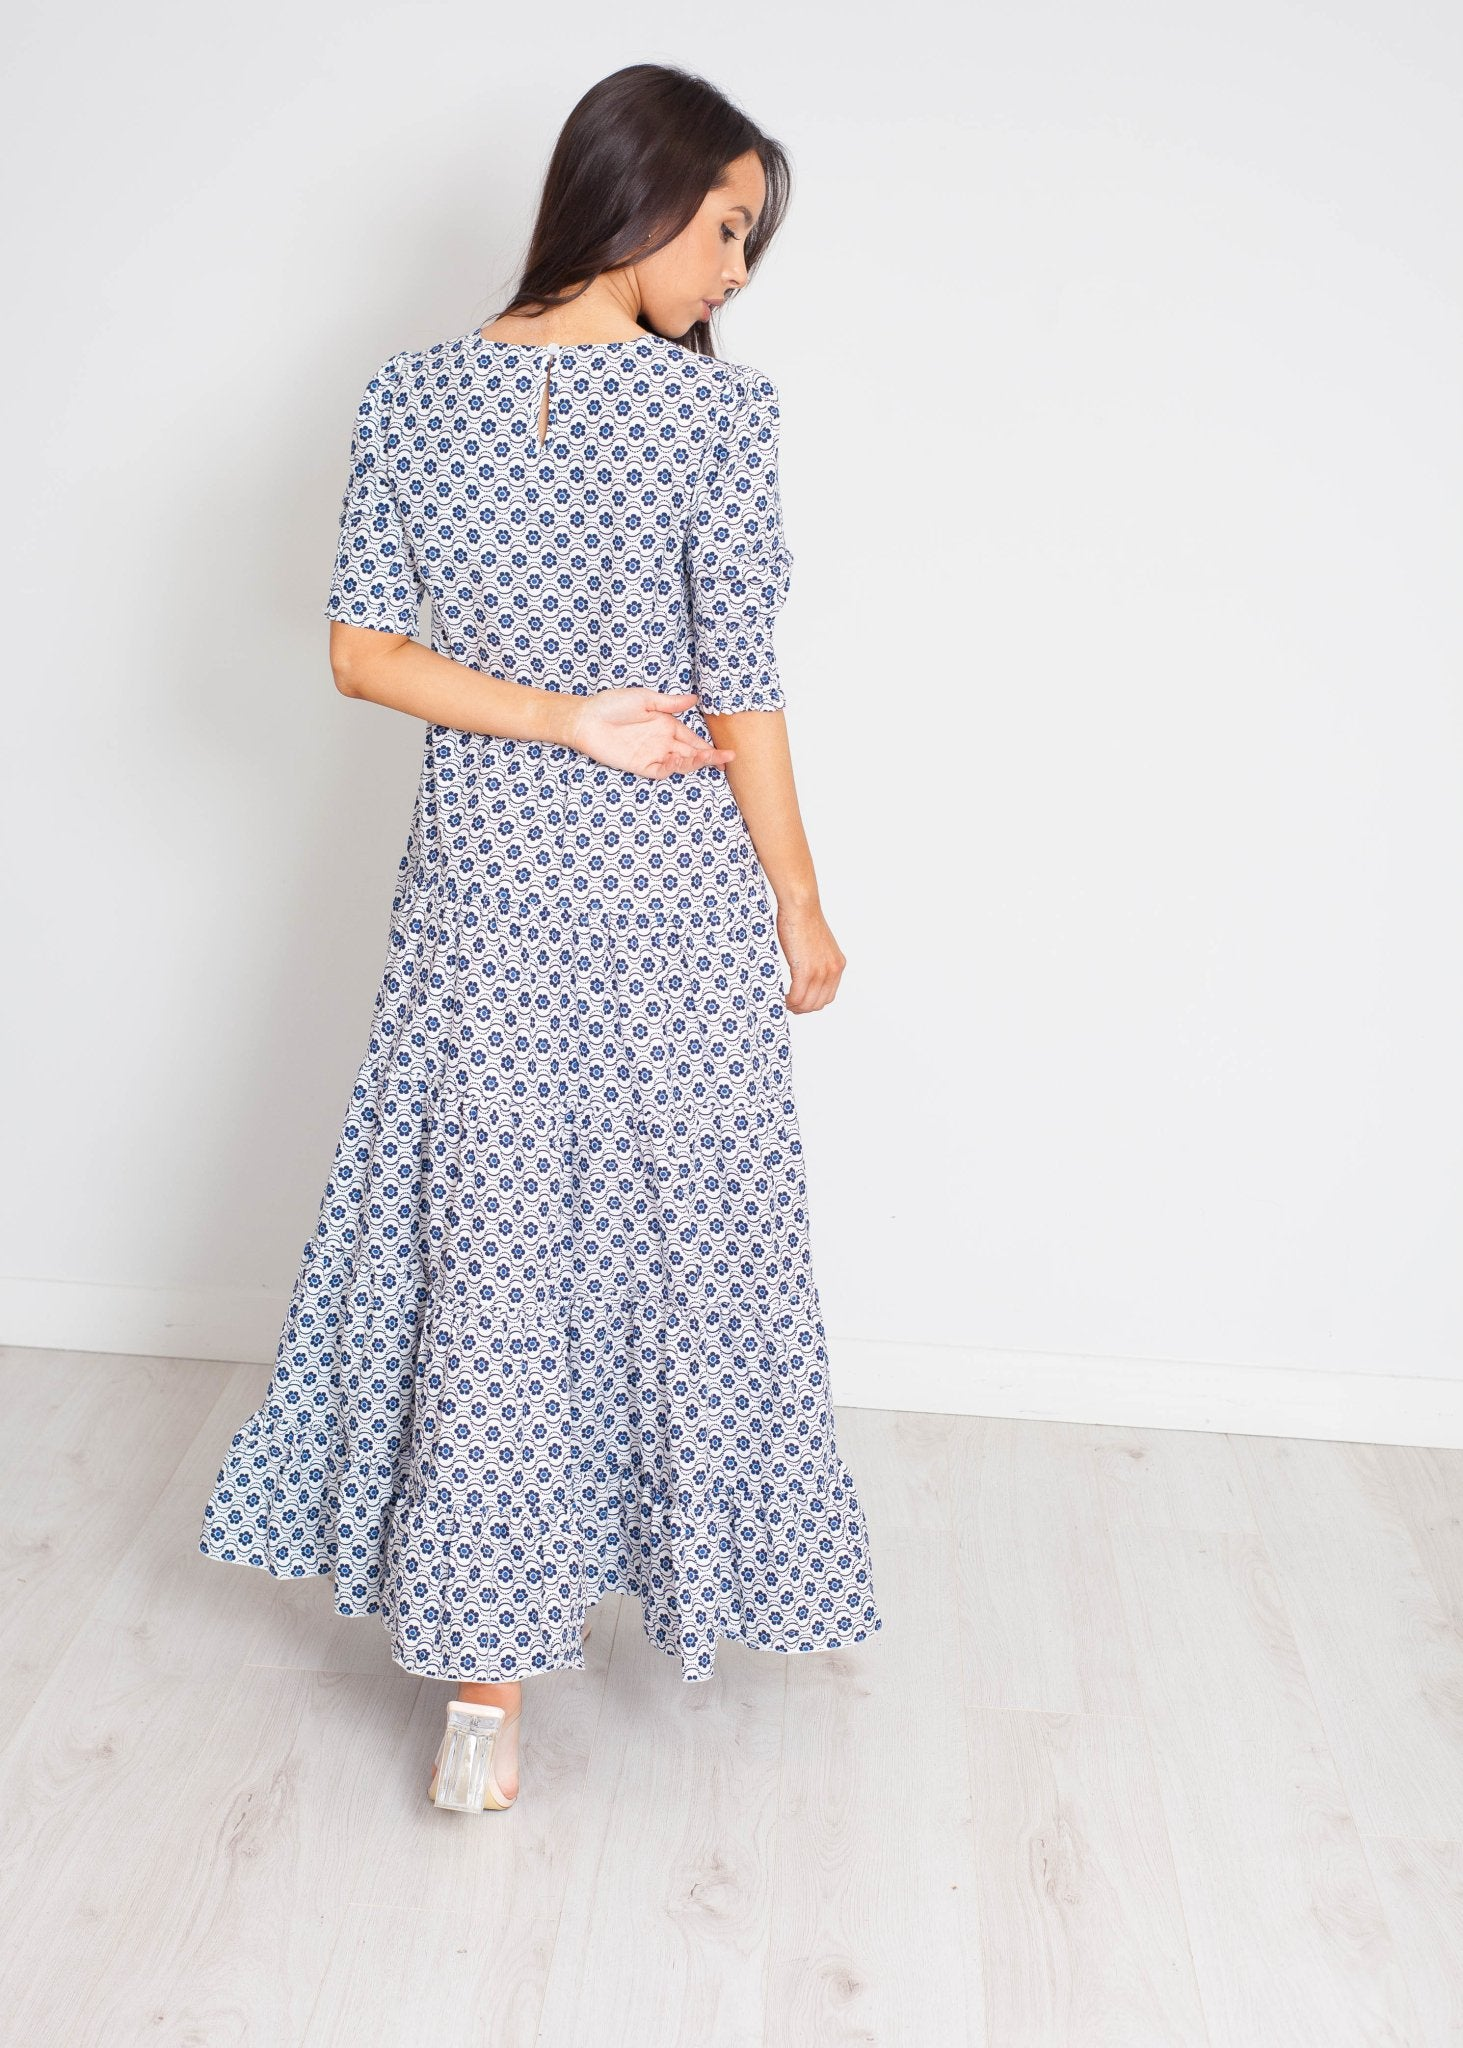 Becca Tiered Maxi Dress In Blue Floral - The Walk in Wardrobe